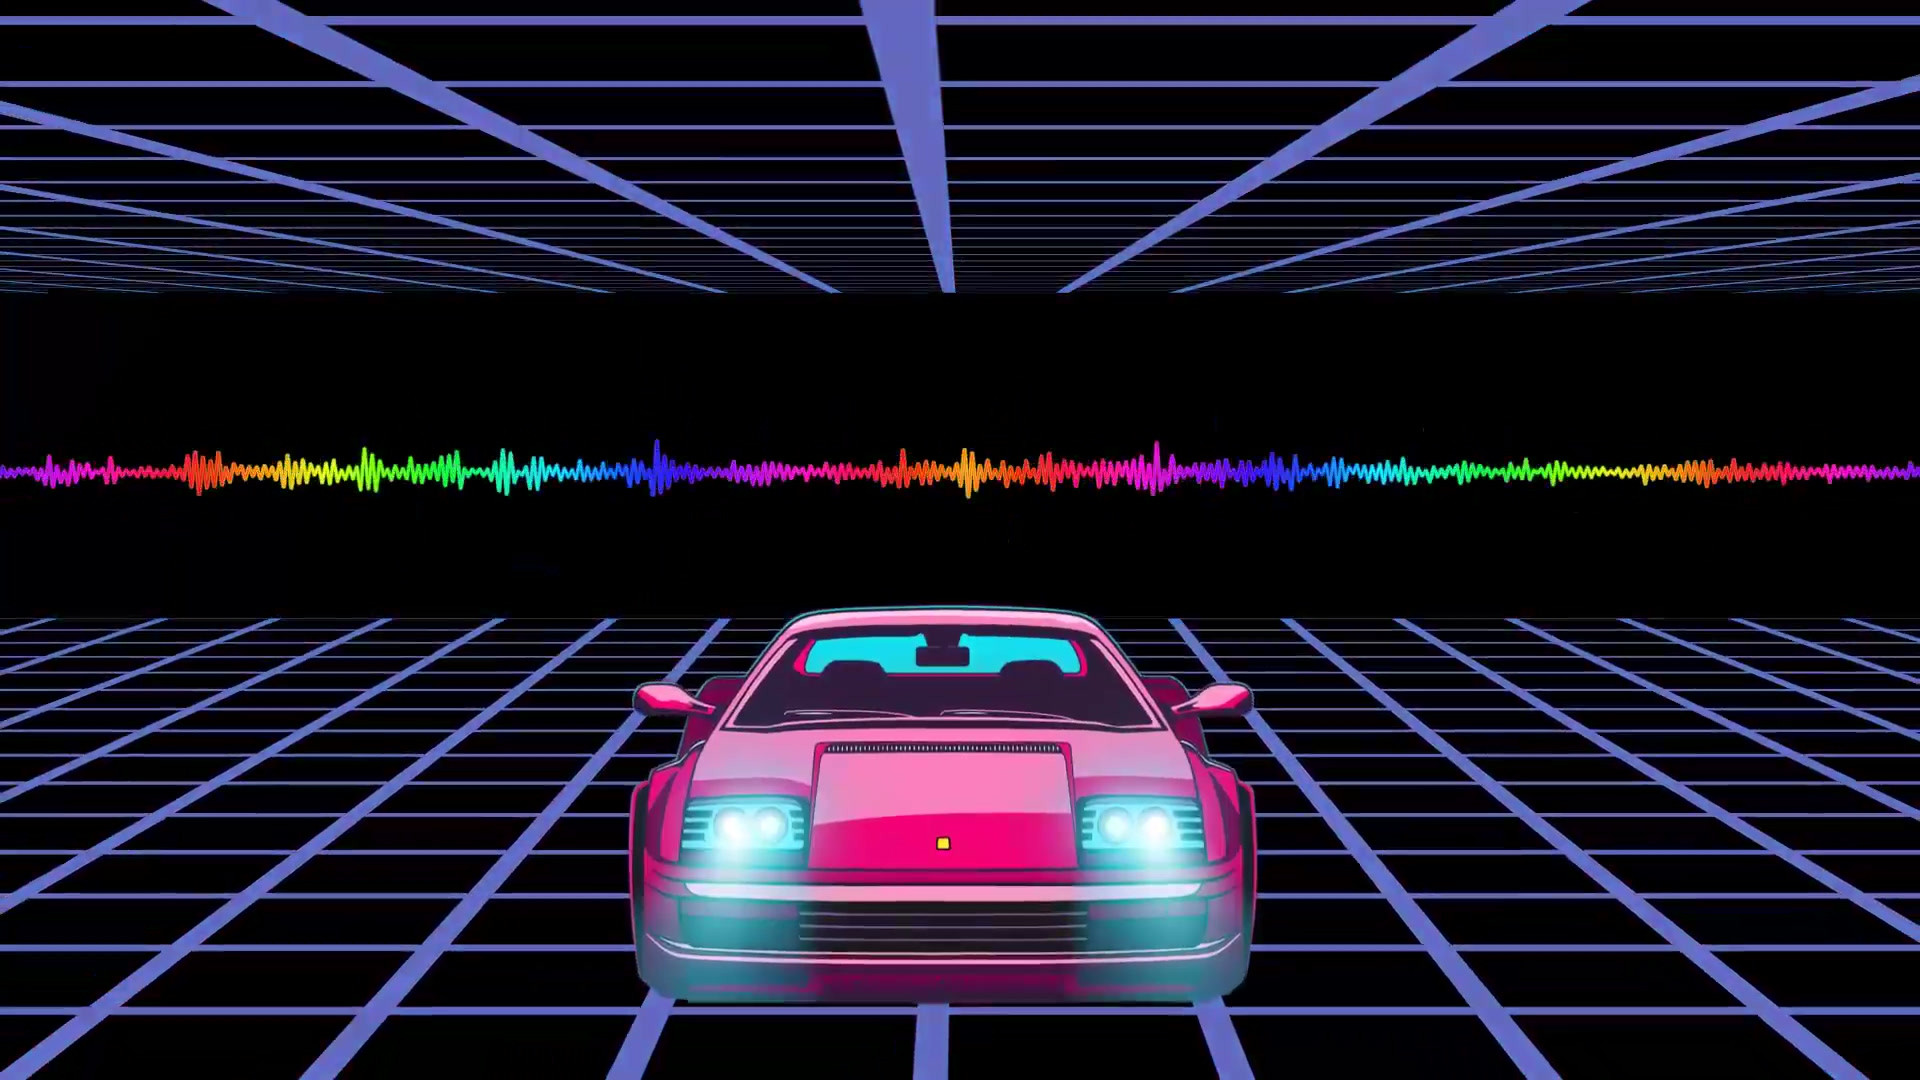 80s synth music_1.mp4